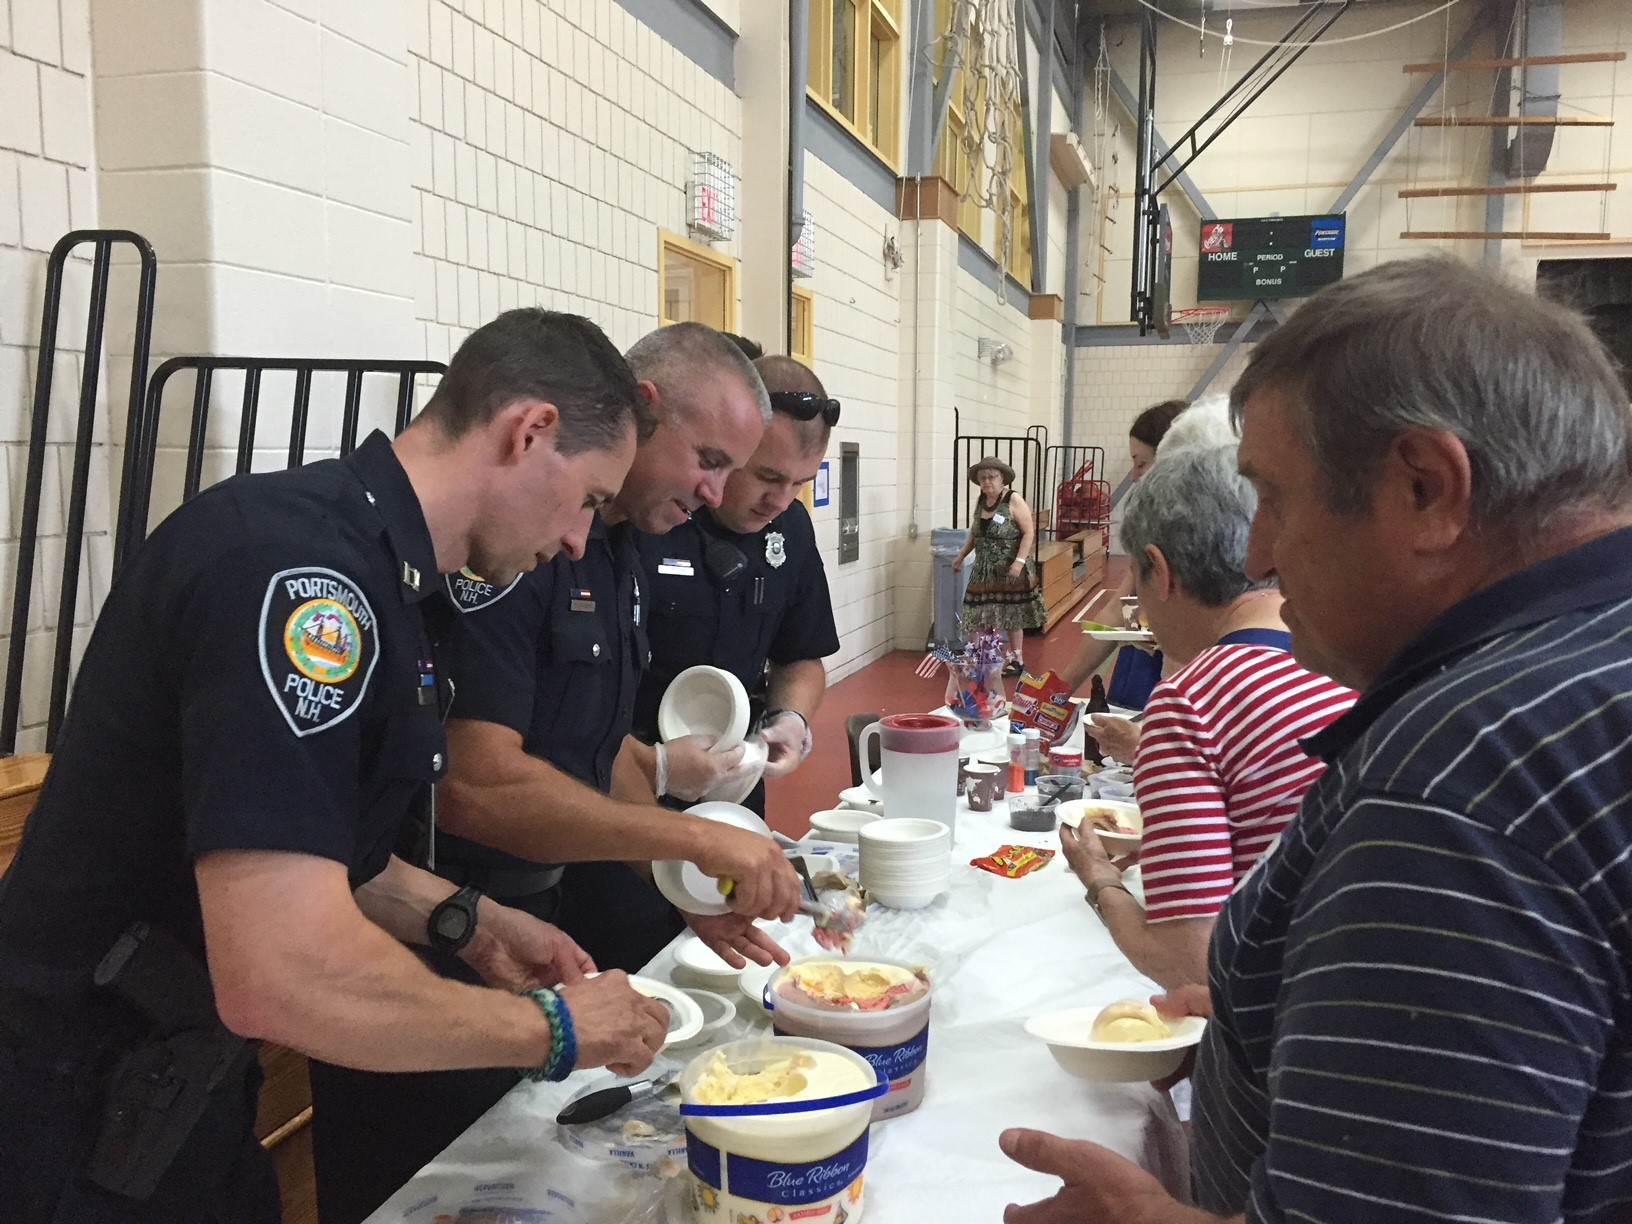 Police officers serve ice cream at the senior cookout